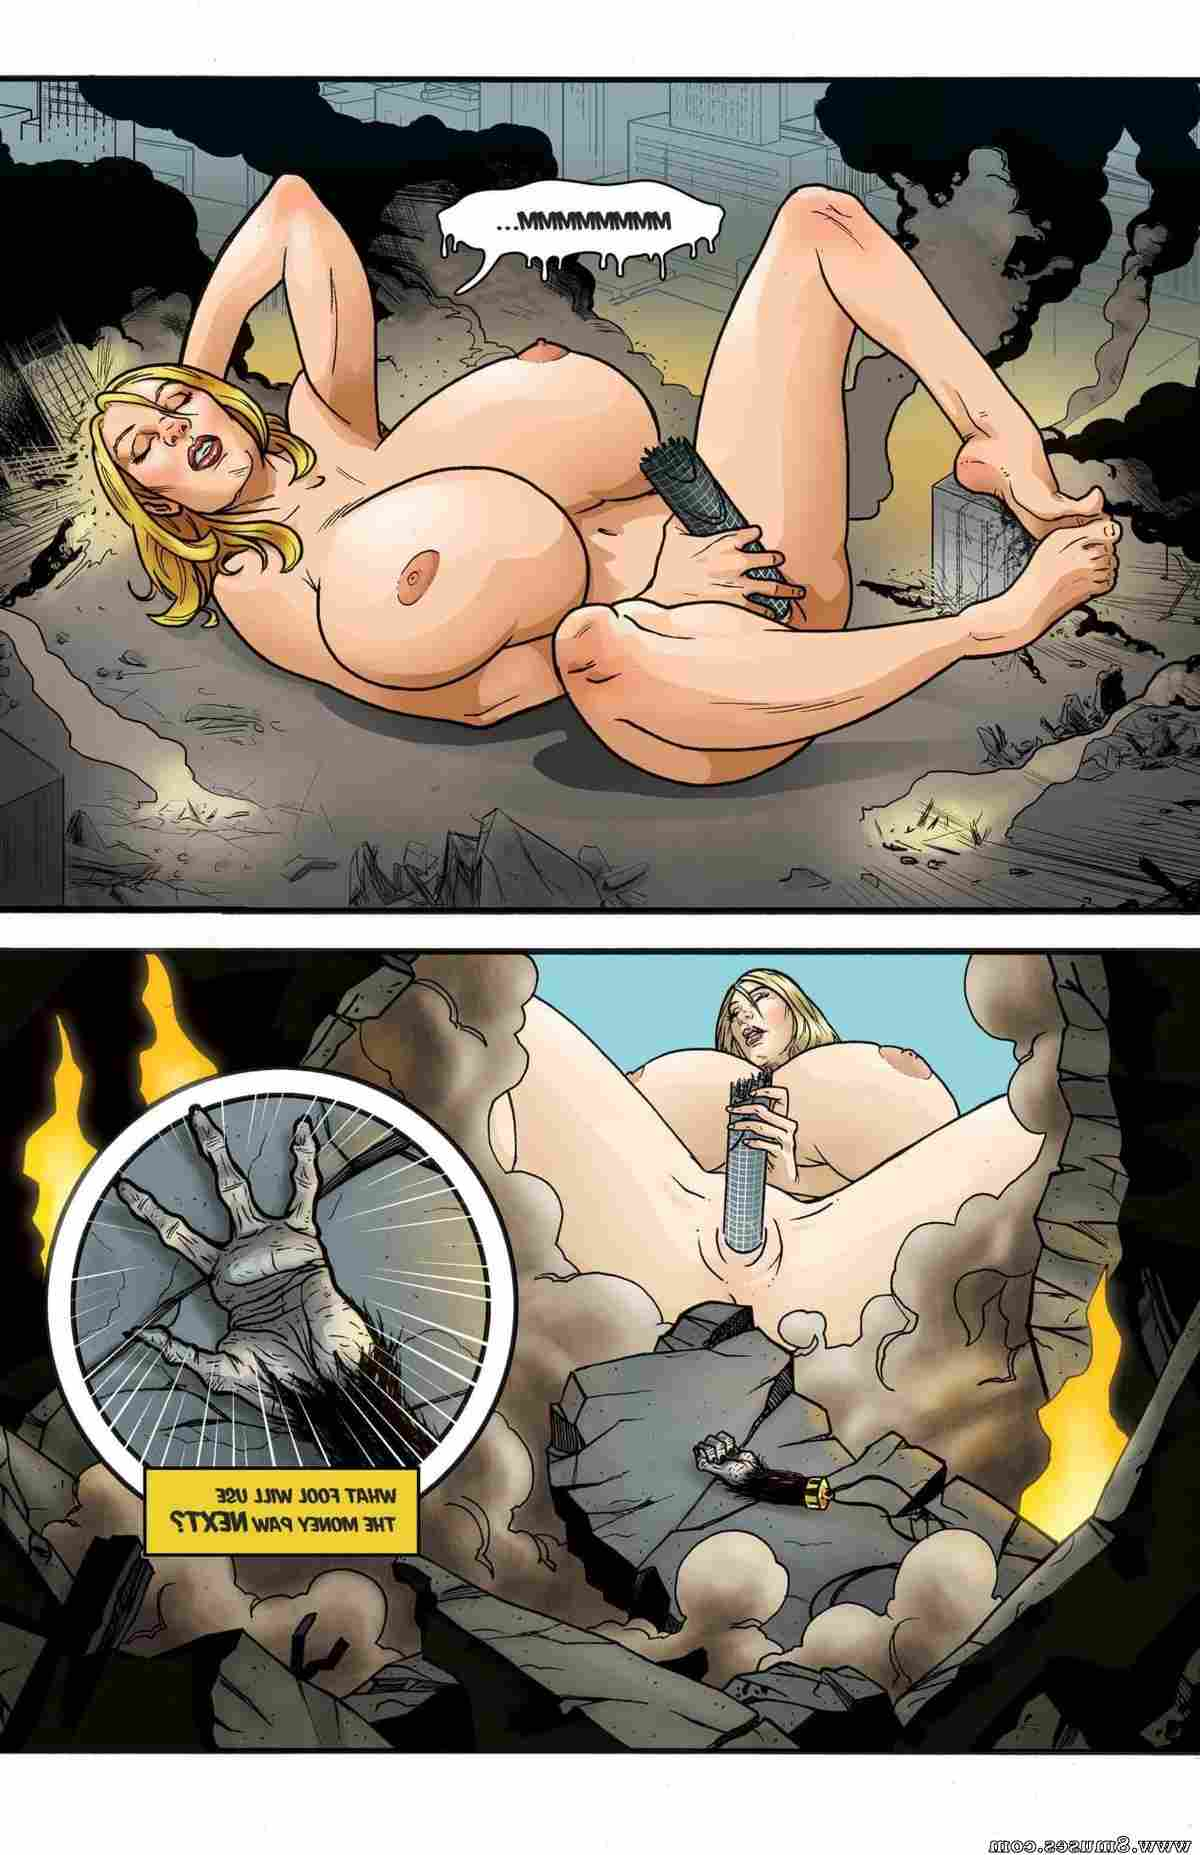 Giantess-Club-Comics/Monkey-Paw Monkey_Paw__8muses_-_Sex_and_Porn_Comics_12.jpg